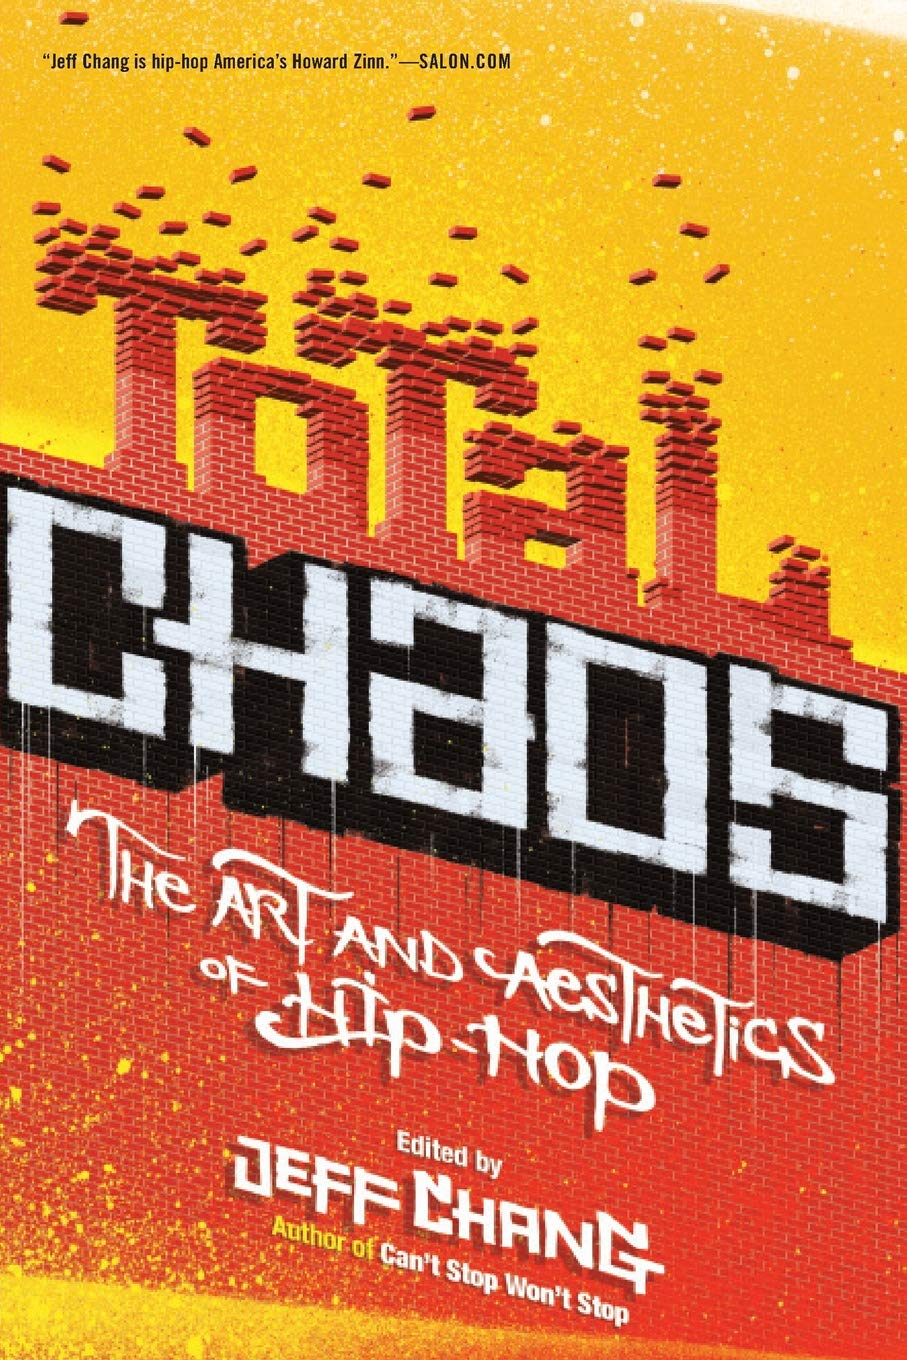 Total Chaos: The Art and Aesthetics of Hip-Hop: Jeff Chang